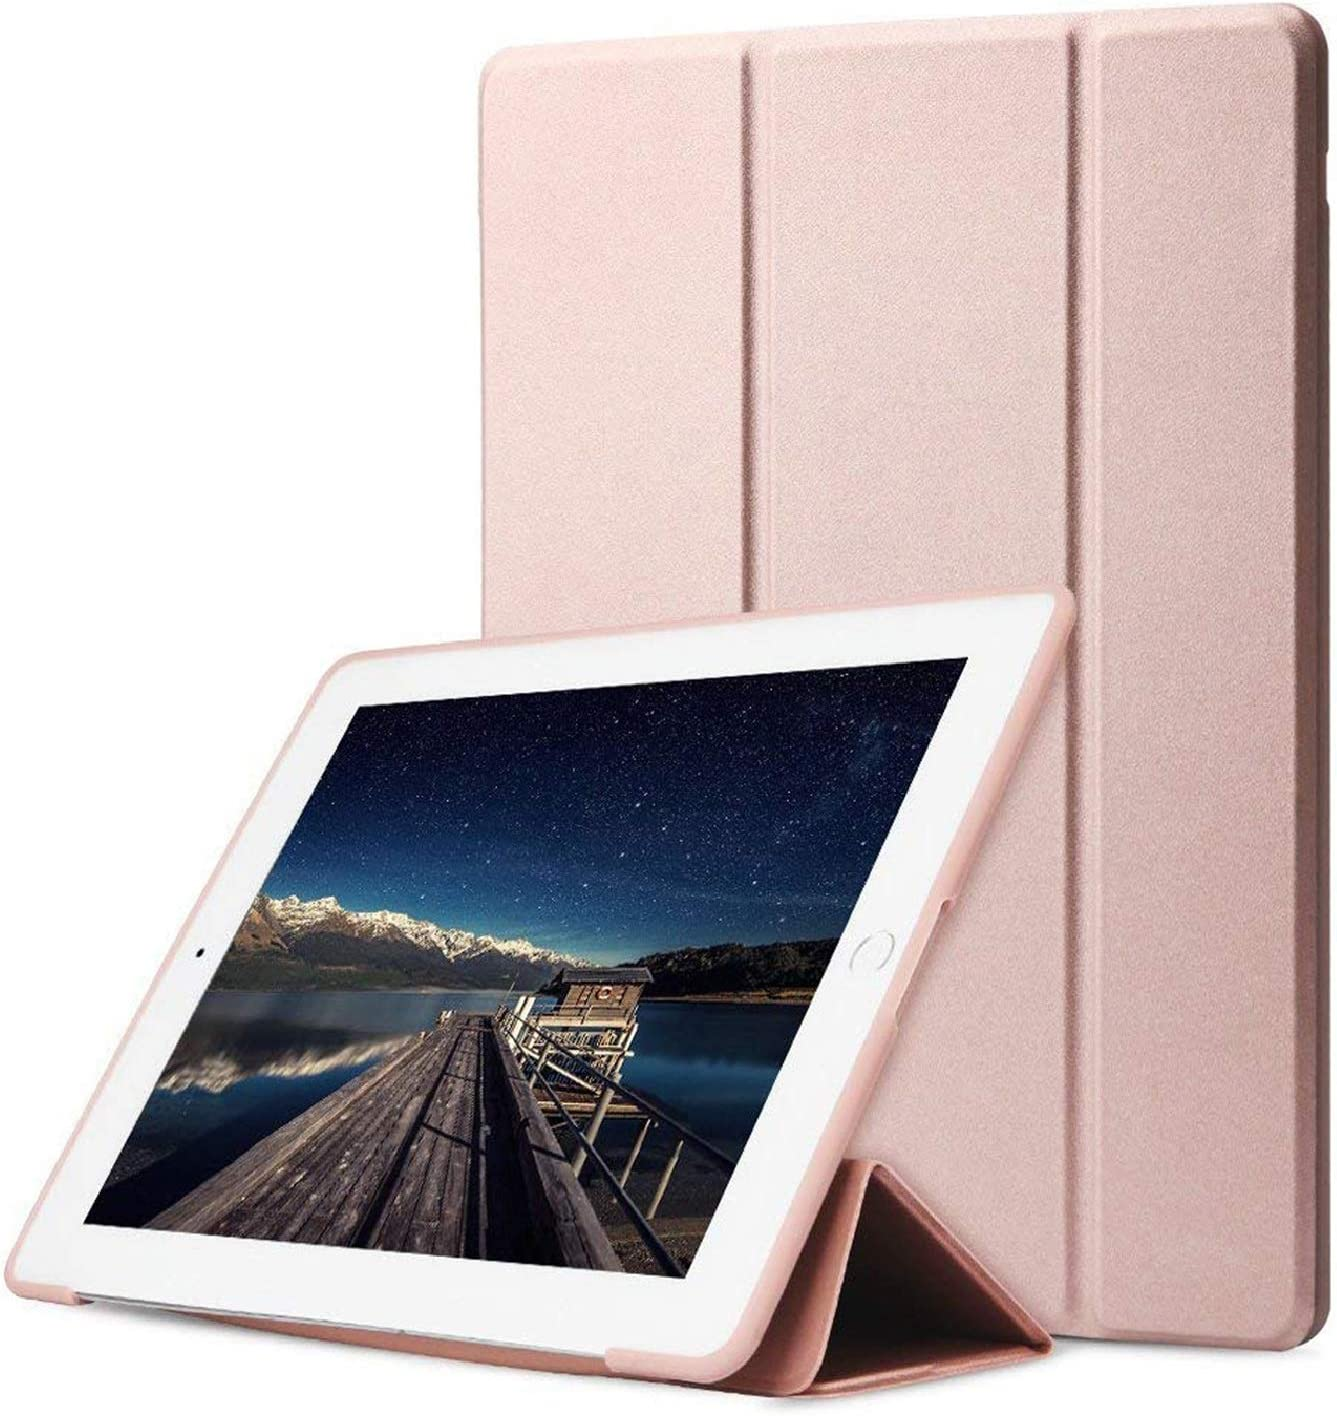 DuraSafe Cases for iPad Air 2 Gen 2014 9.7 Inch [ A1566 A1567 ] Soft Silicone Back (for Extra Shock Protection) Ultra Slim Smart Cover Auto Sleep/Wake - Rose Gold